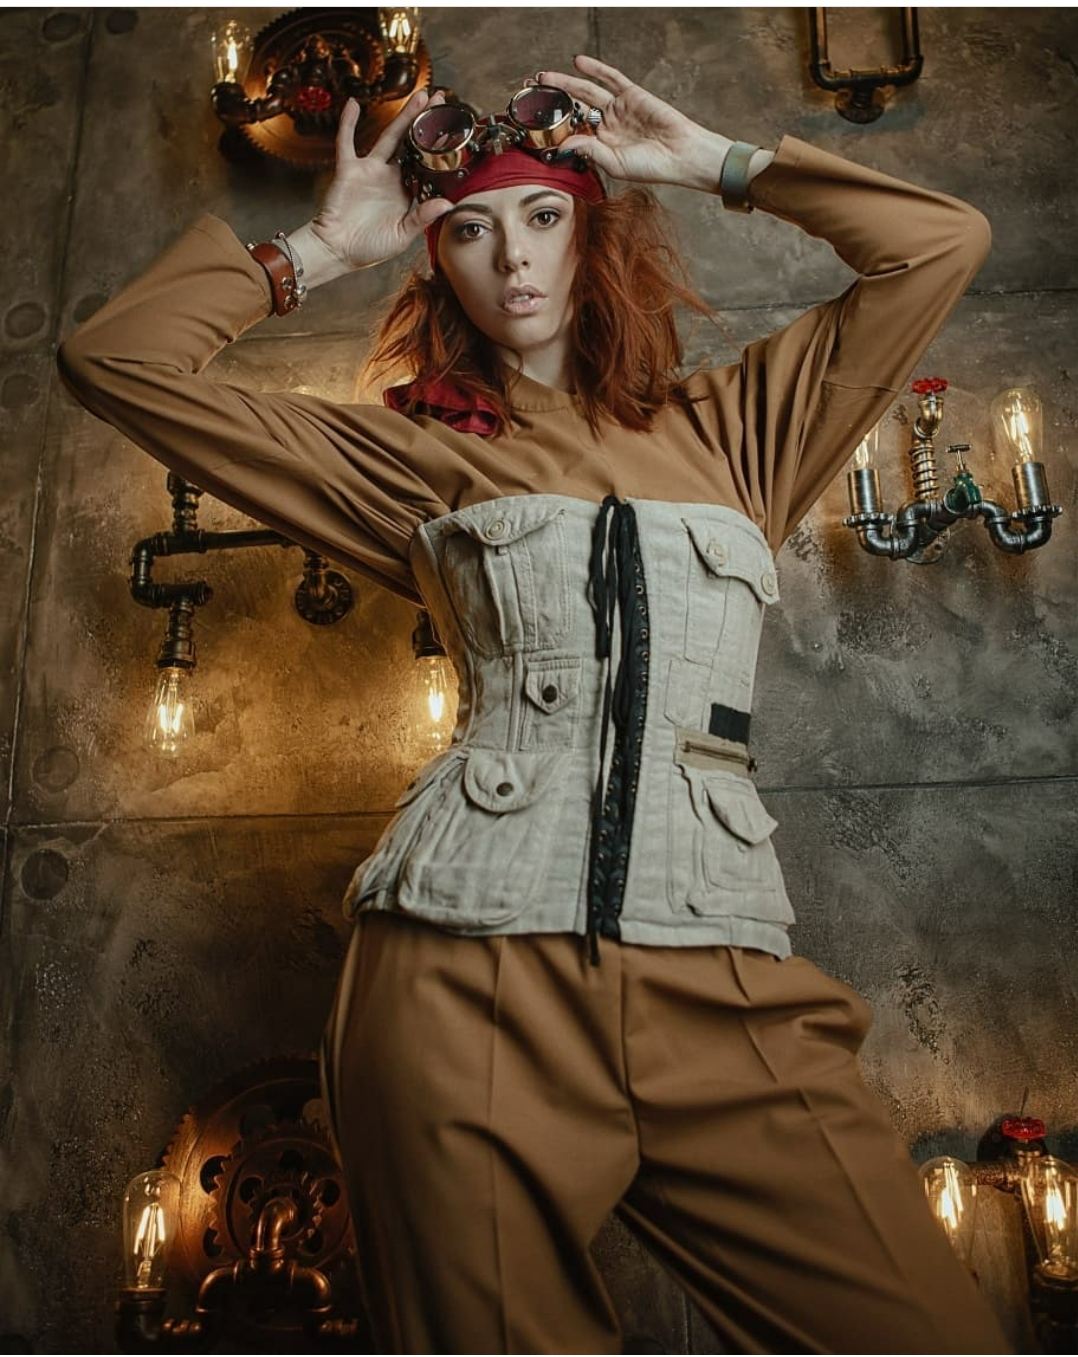 Steampunk style photos by Zhenya Volkova